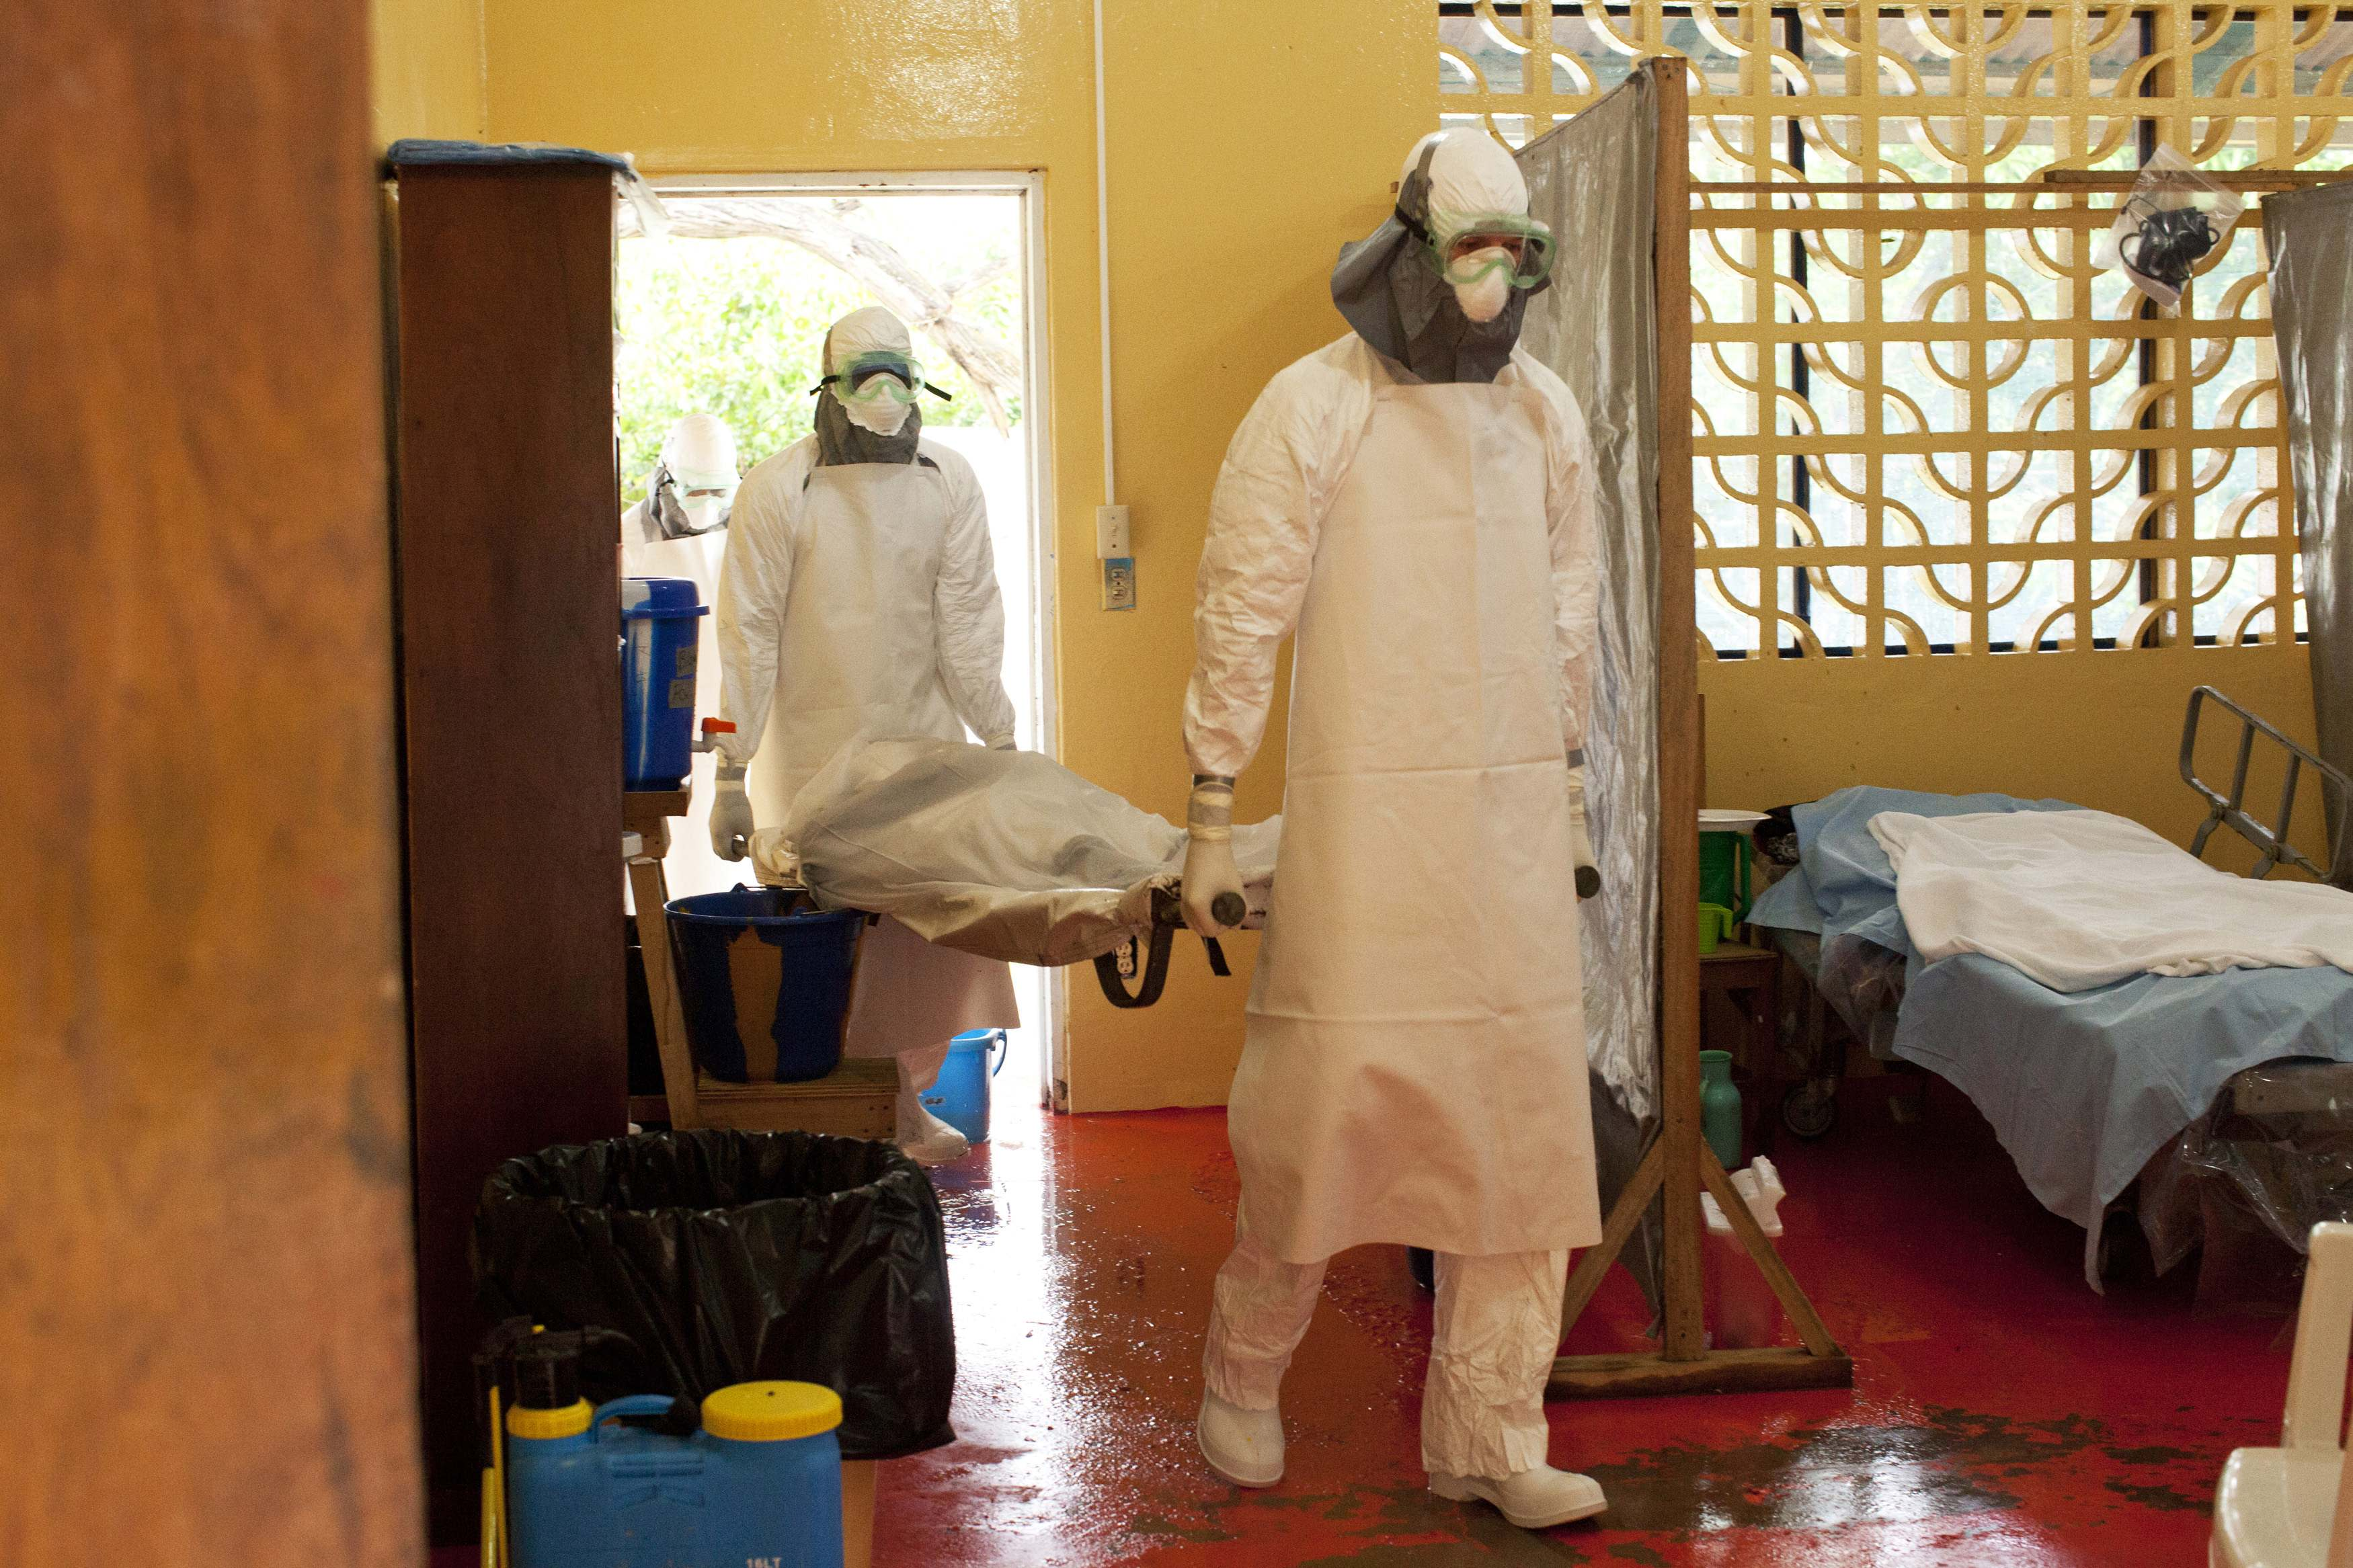 American missionaries infected with Ebola to be brought home